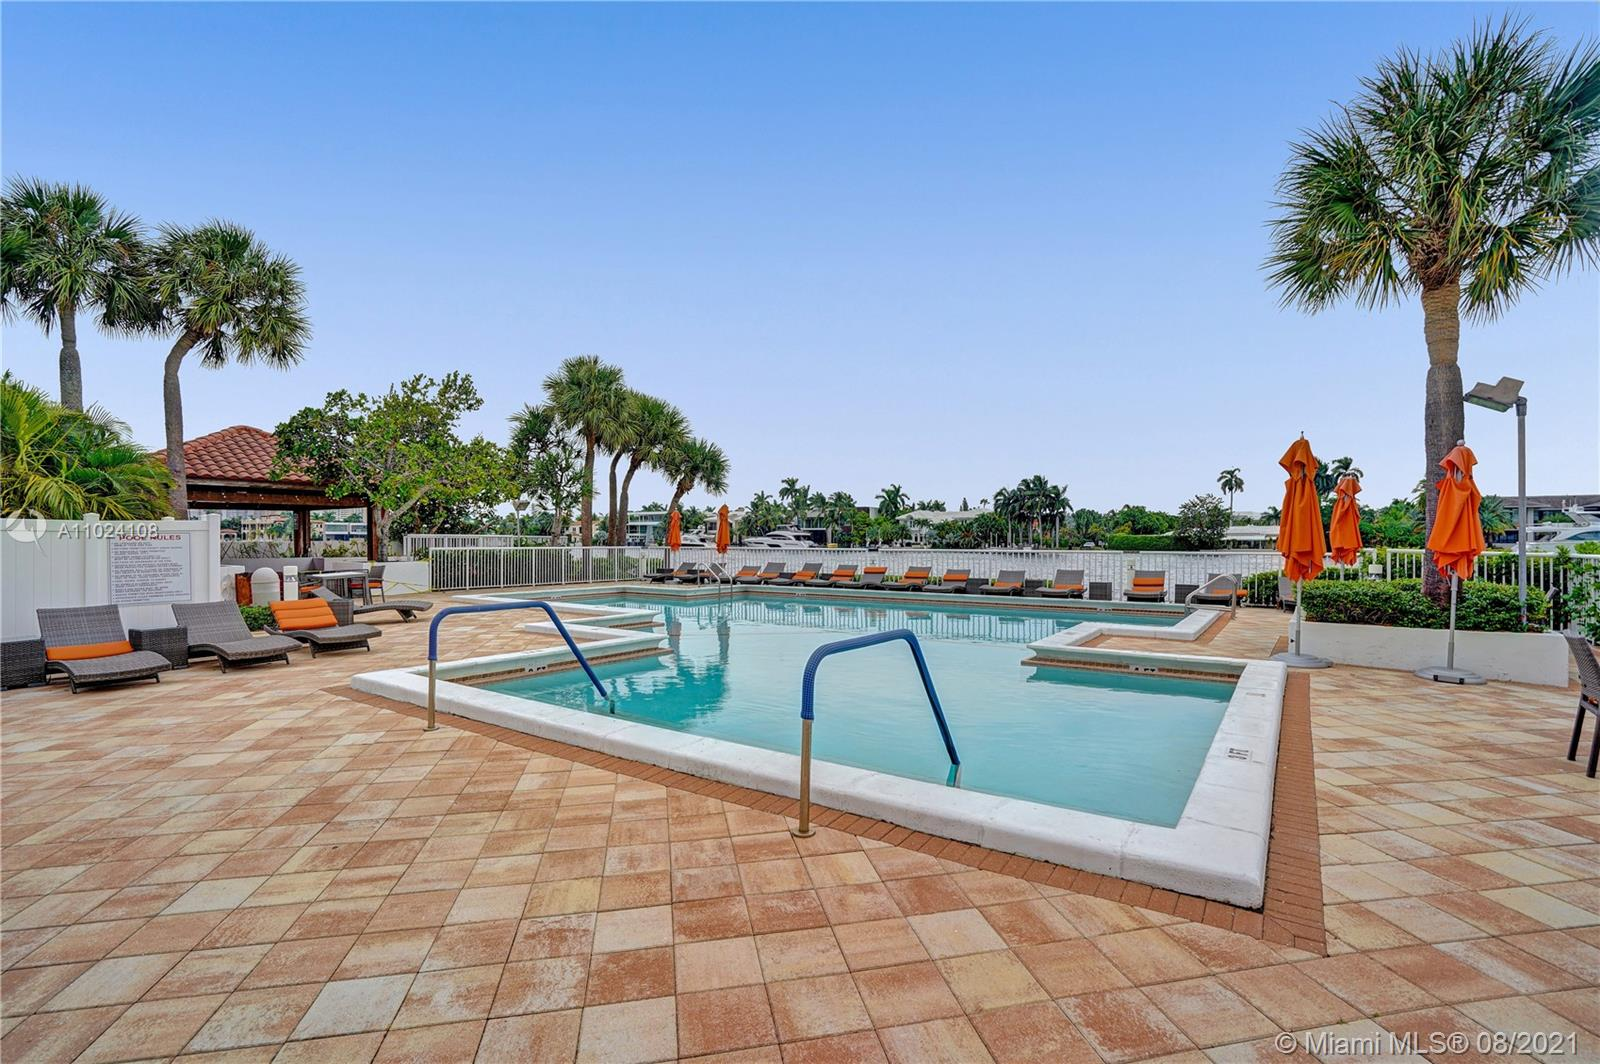 Photo of 20281 Country Club Dr #2407, Aventura, Florida, 33180 - View of the intracoastal pool and the restaurant.